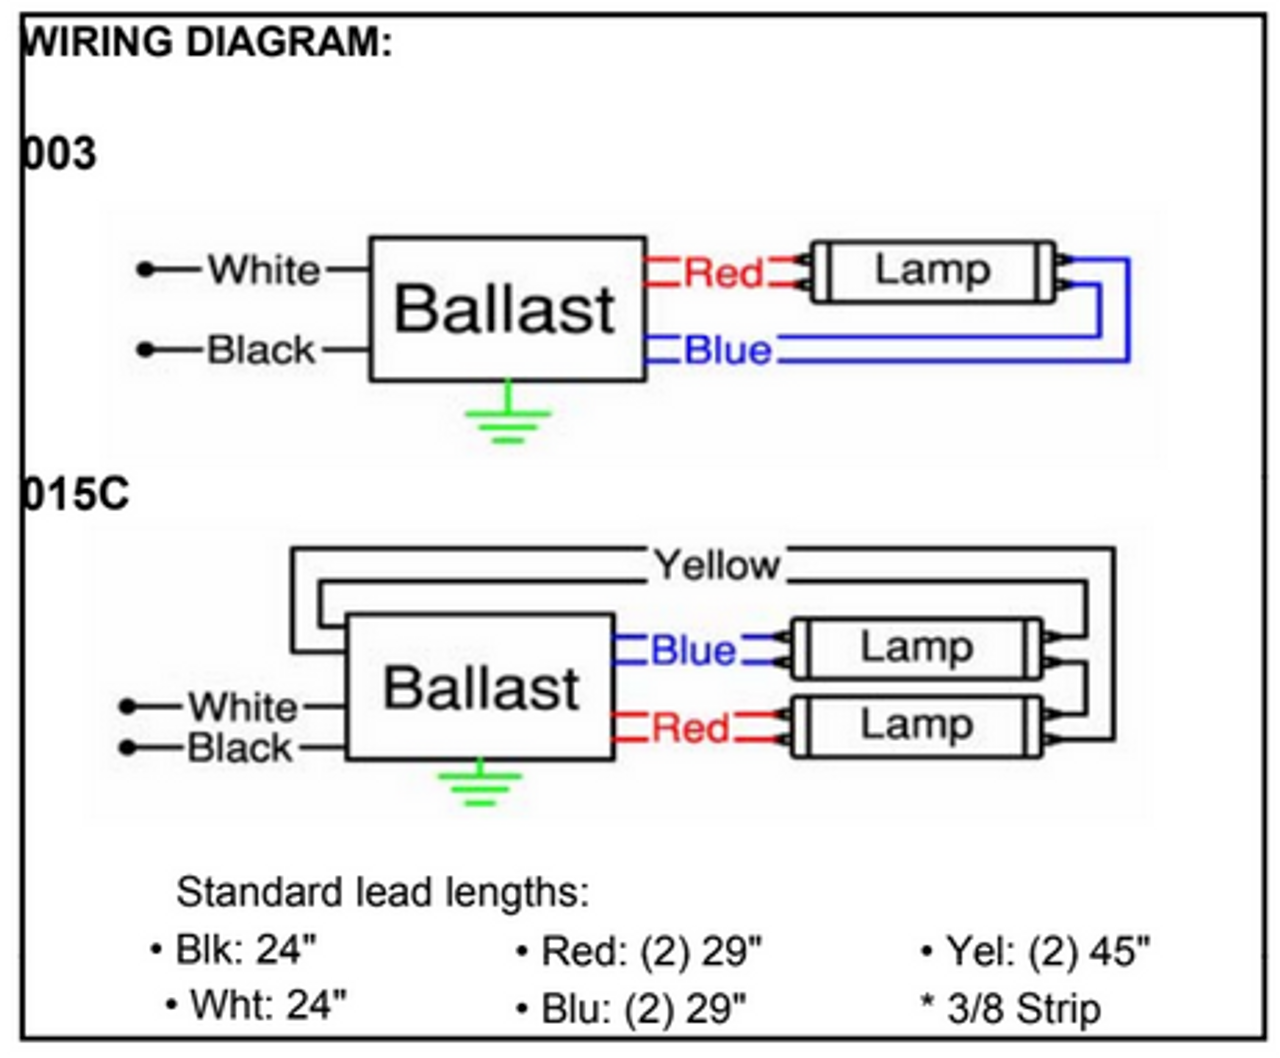 Diagram For Wiring 4 Pin Floursent | Wiring Diagram on